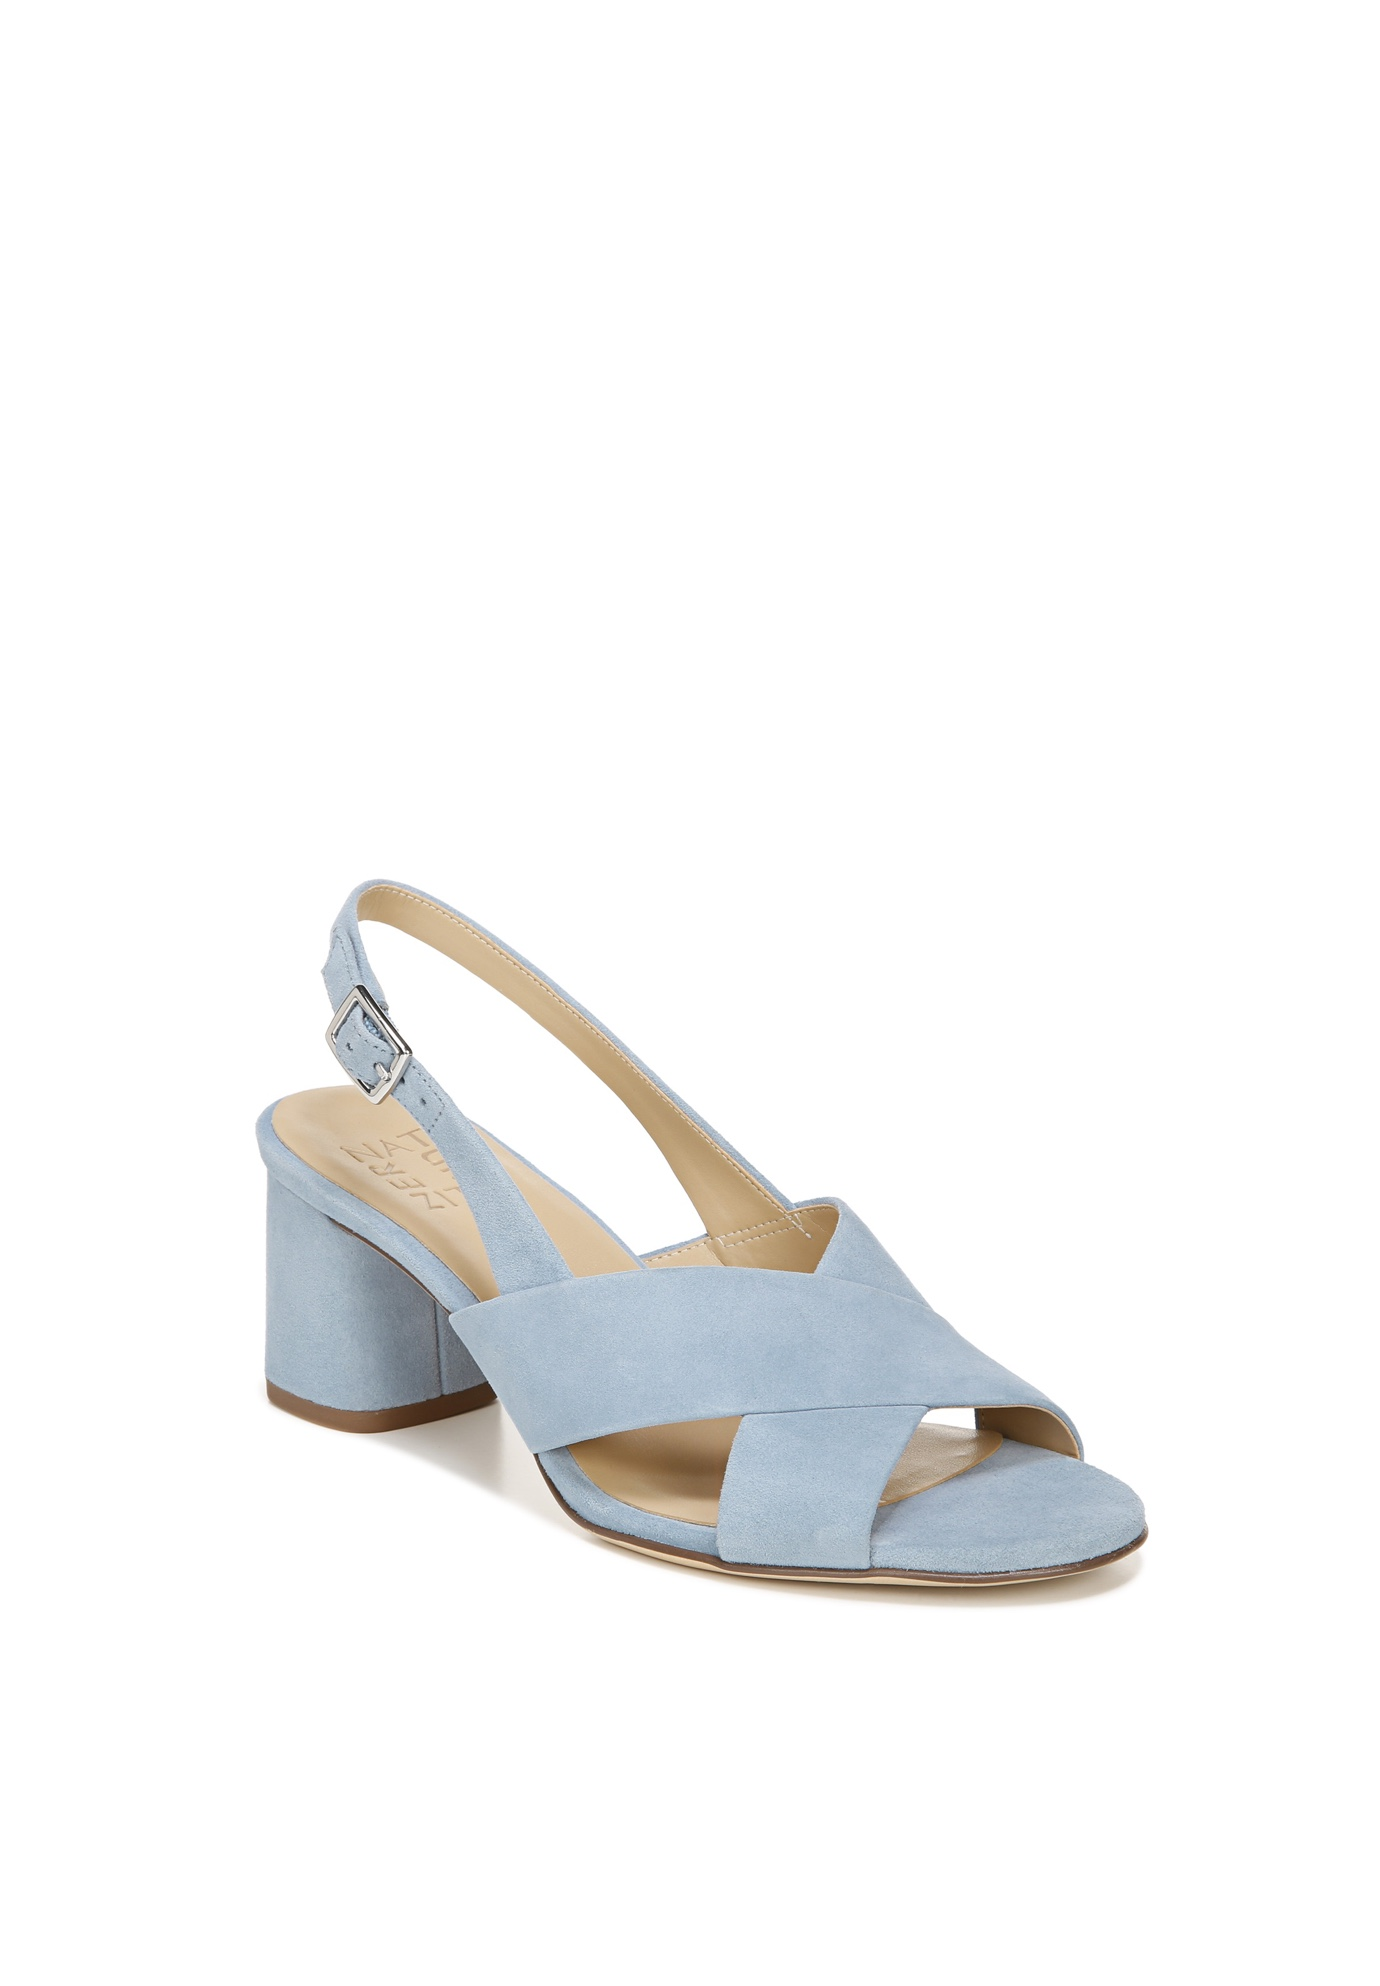 Azalea Sandal by Naturalizer,